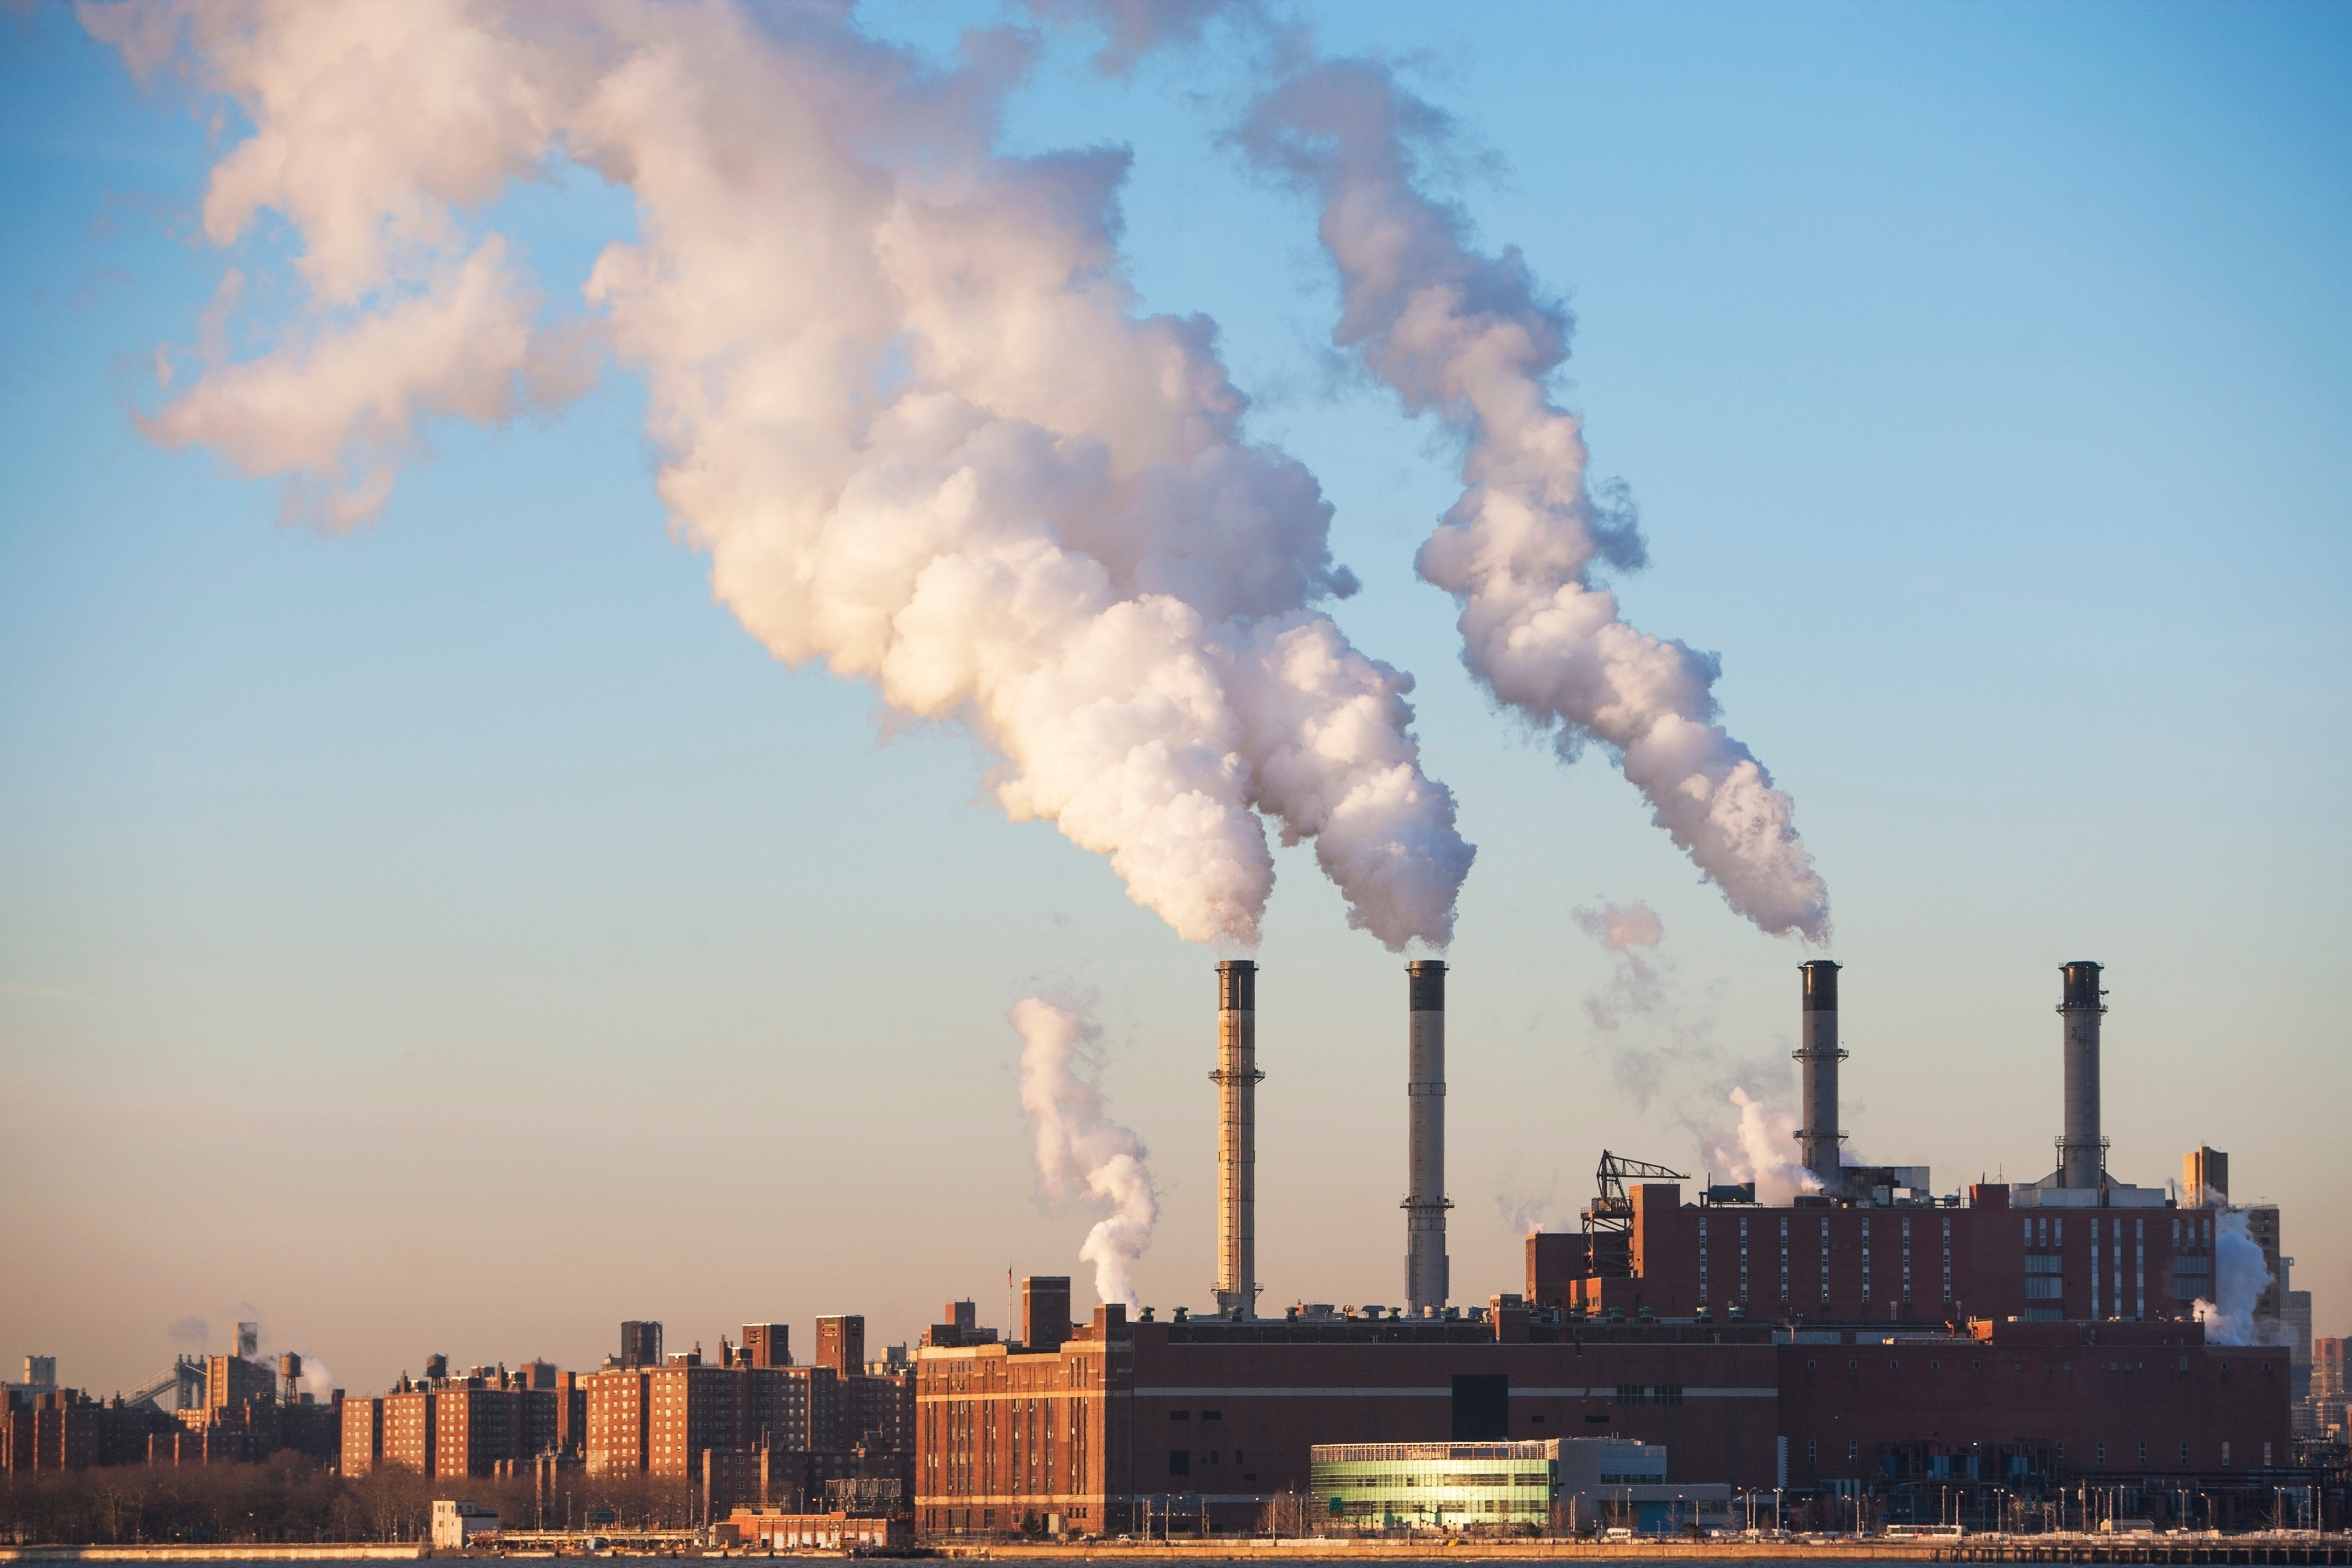 EPA to Ease Pollution Enforcement, Which Could Exacerbate Lung Illnesses